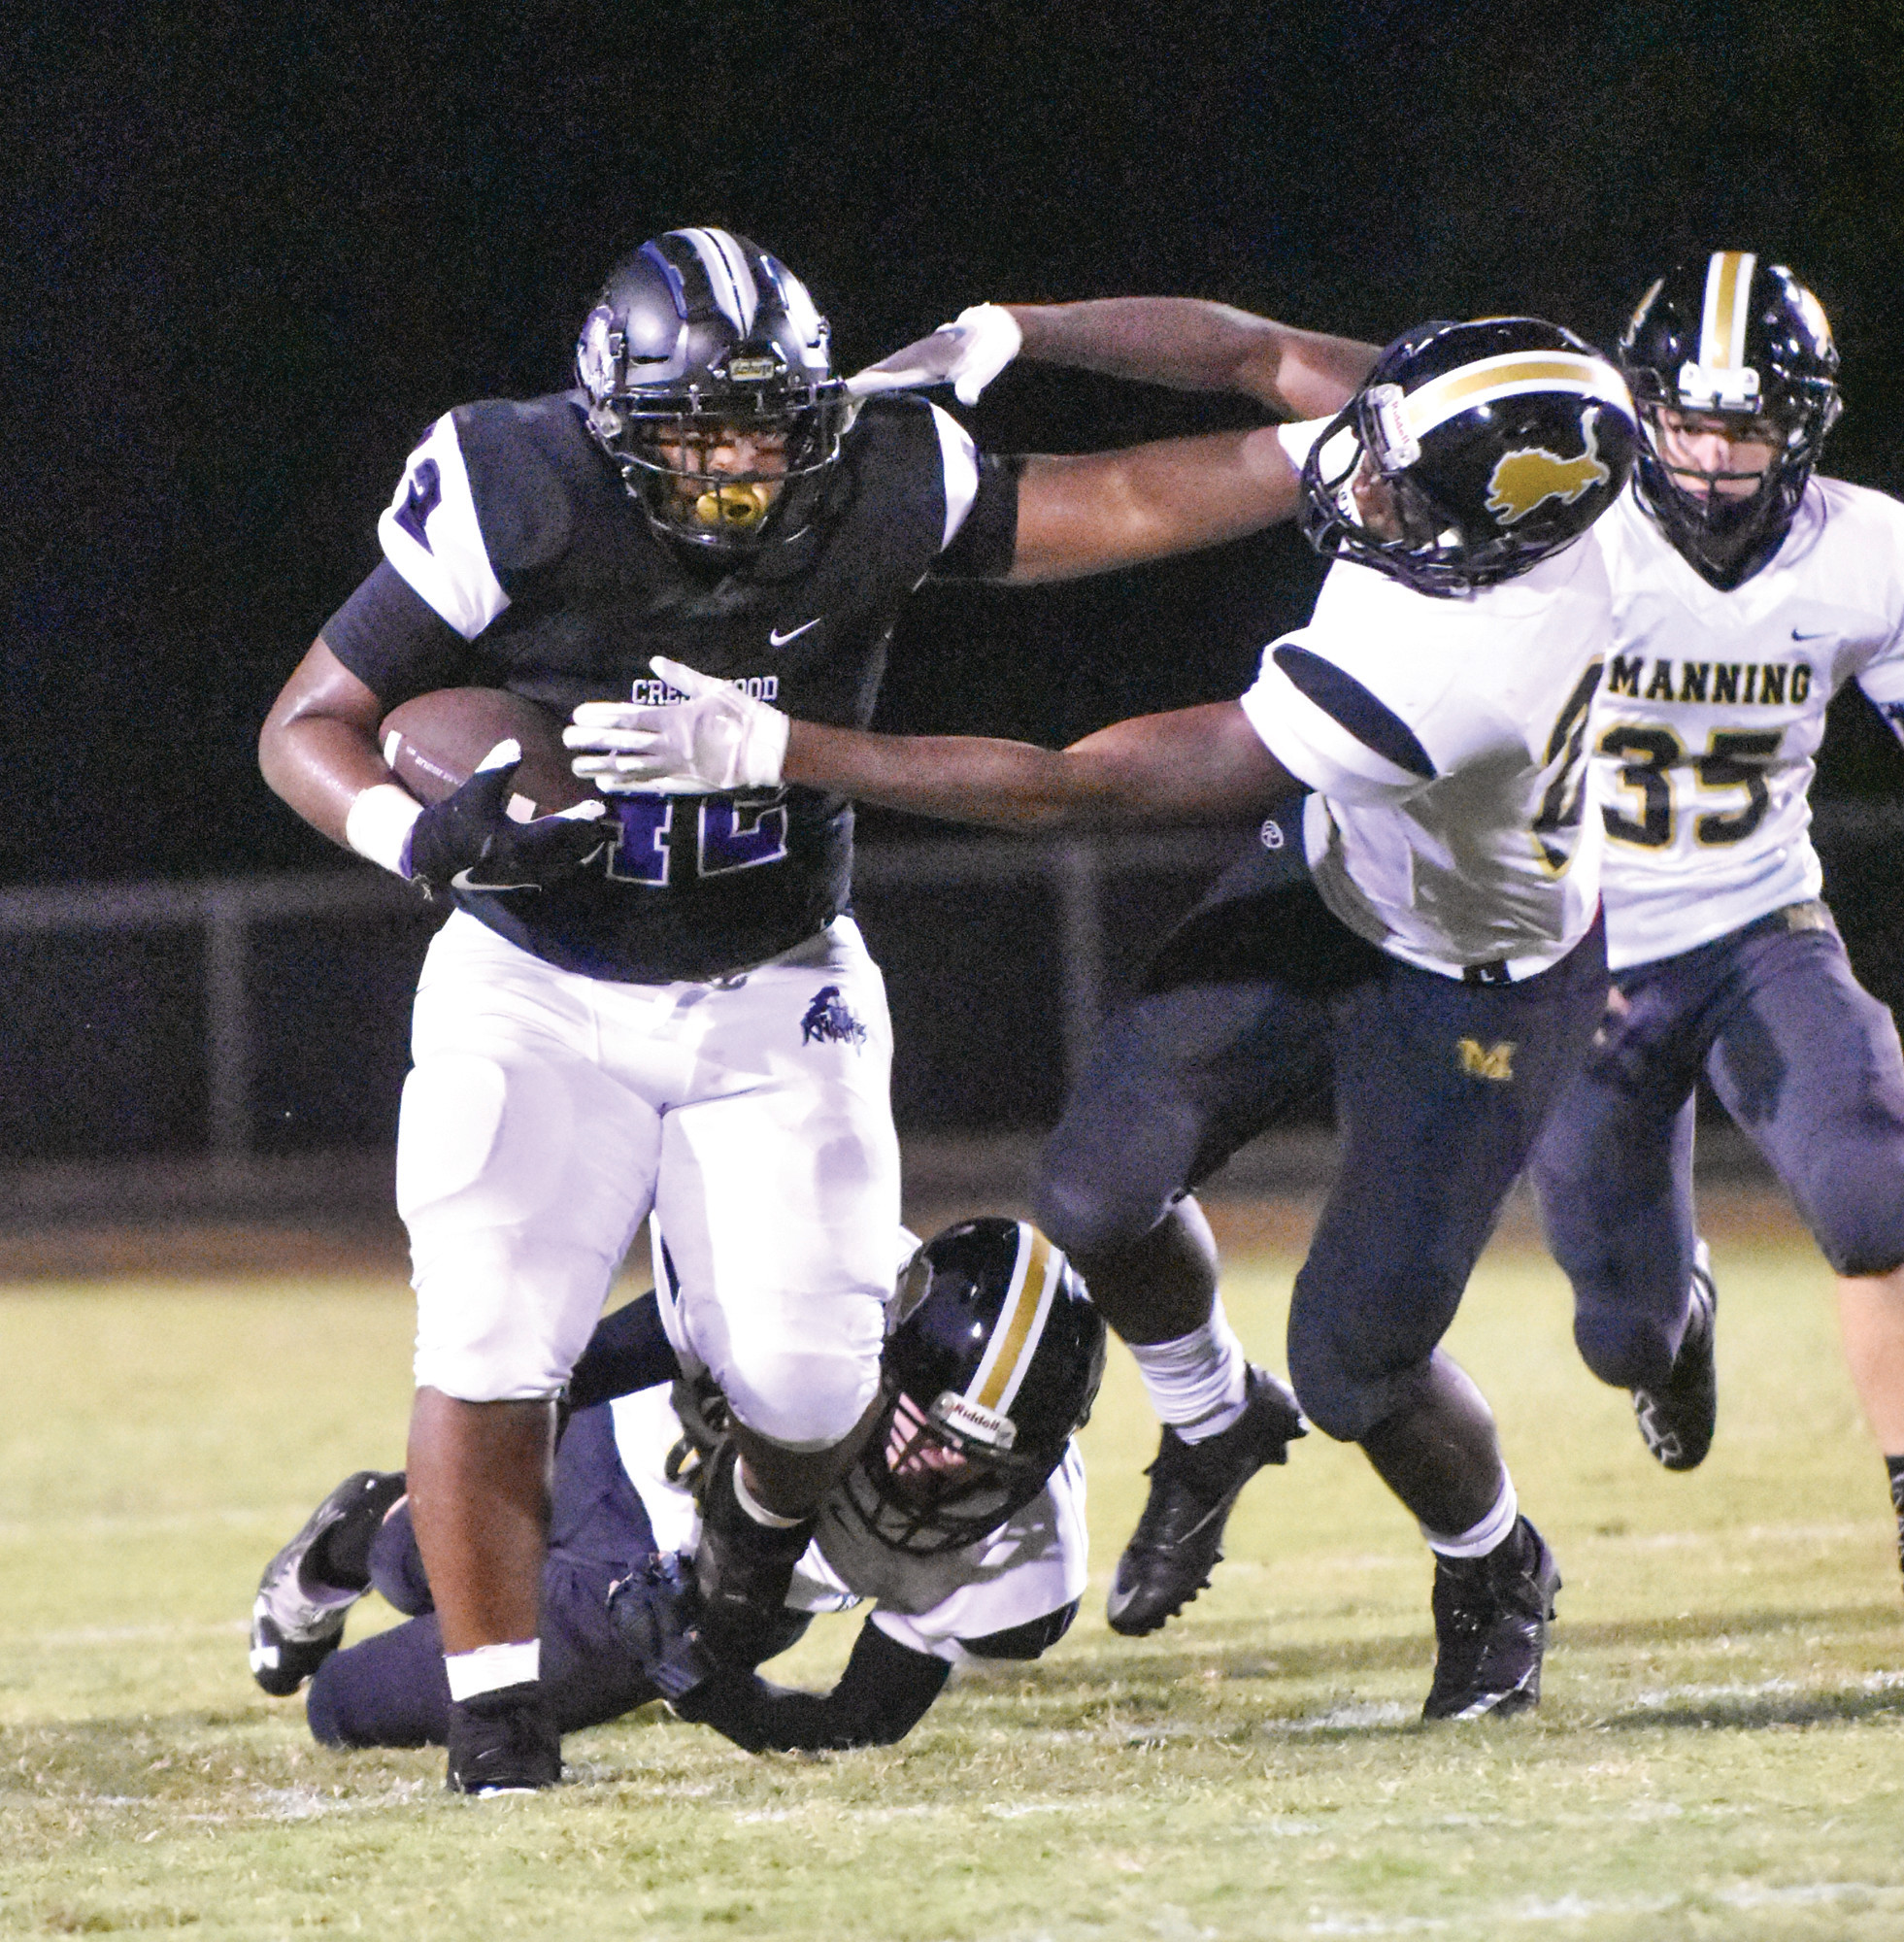 Crestwood running back Chris Haynesworth (42) delivers a stiff-arm to Manning defender Anthony Gibbs (22) during the third quarter of the Knights' 14-7 loss to the Monarchs on Friday at Donald L. Crolley Memorial Stadium in Dalzell.